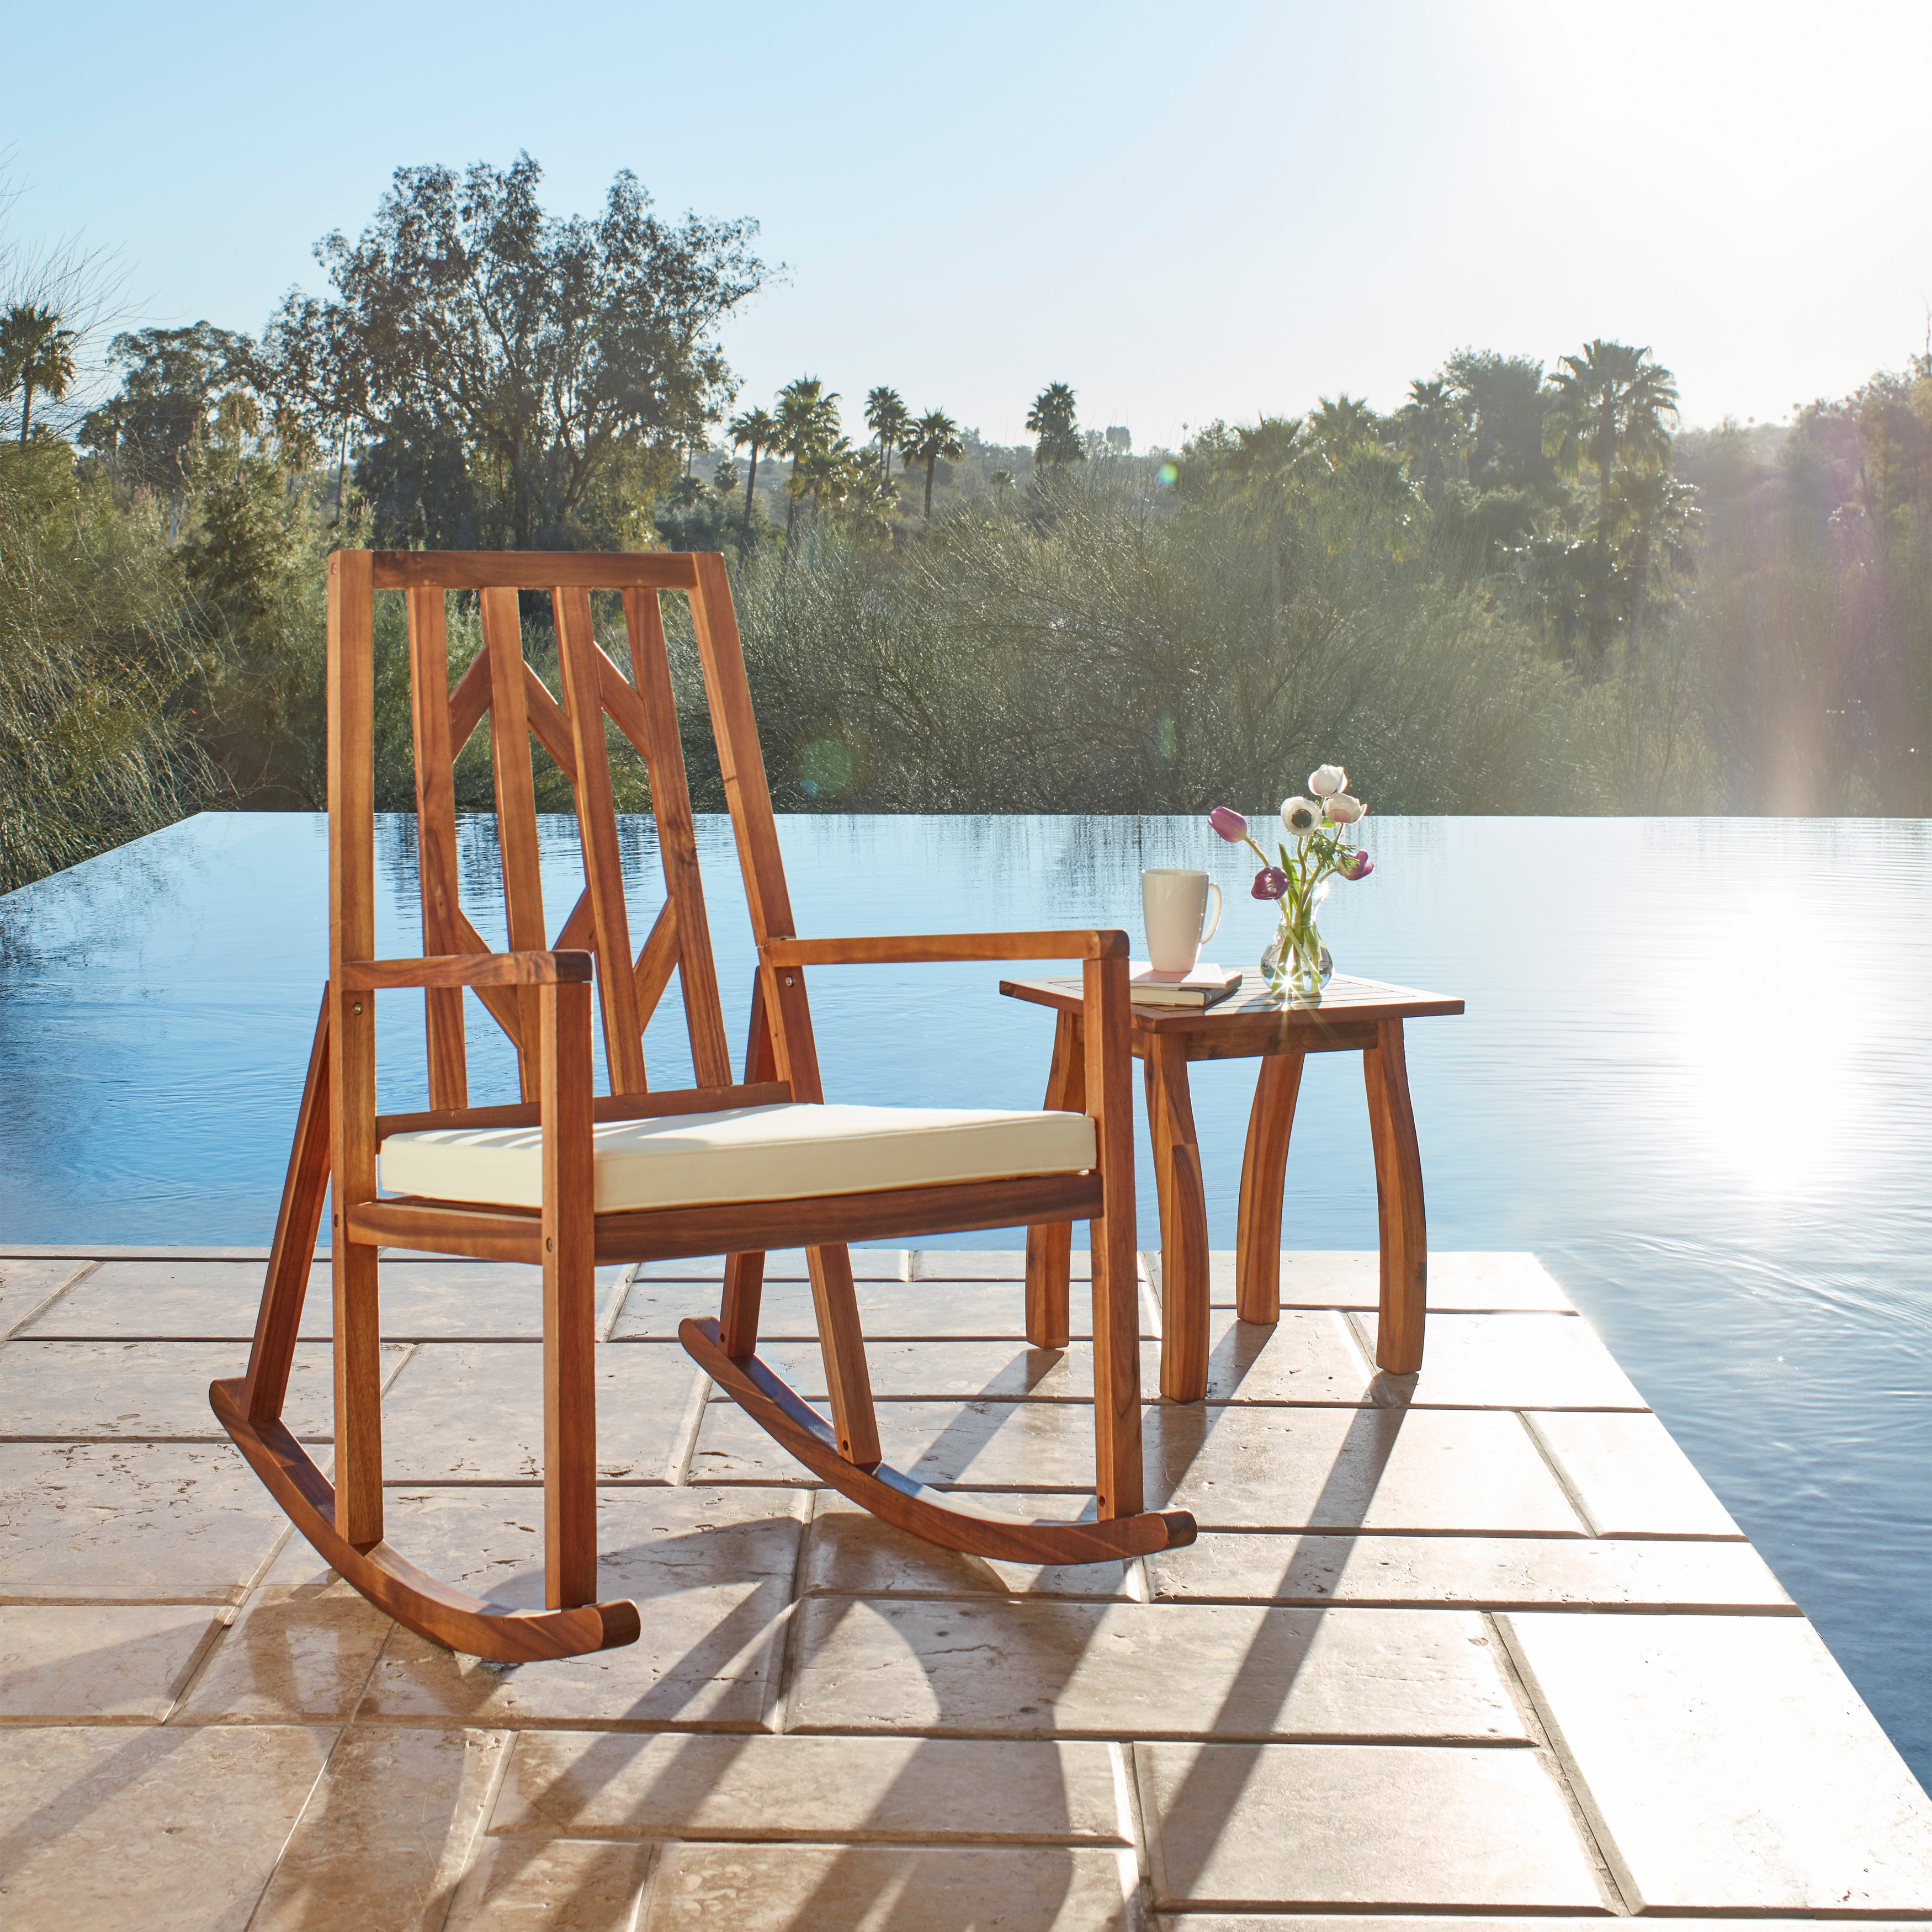 Nuna Outdoor 2-piece Wood Rocking Chair with Cushions and...